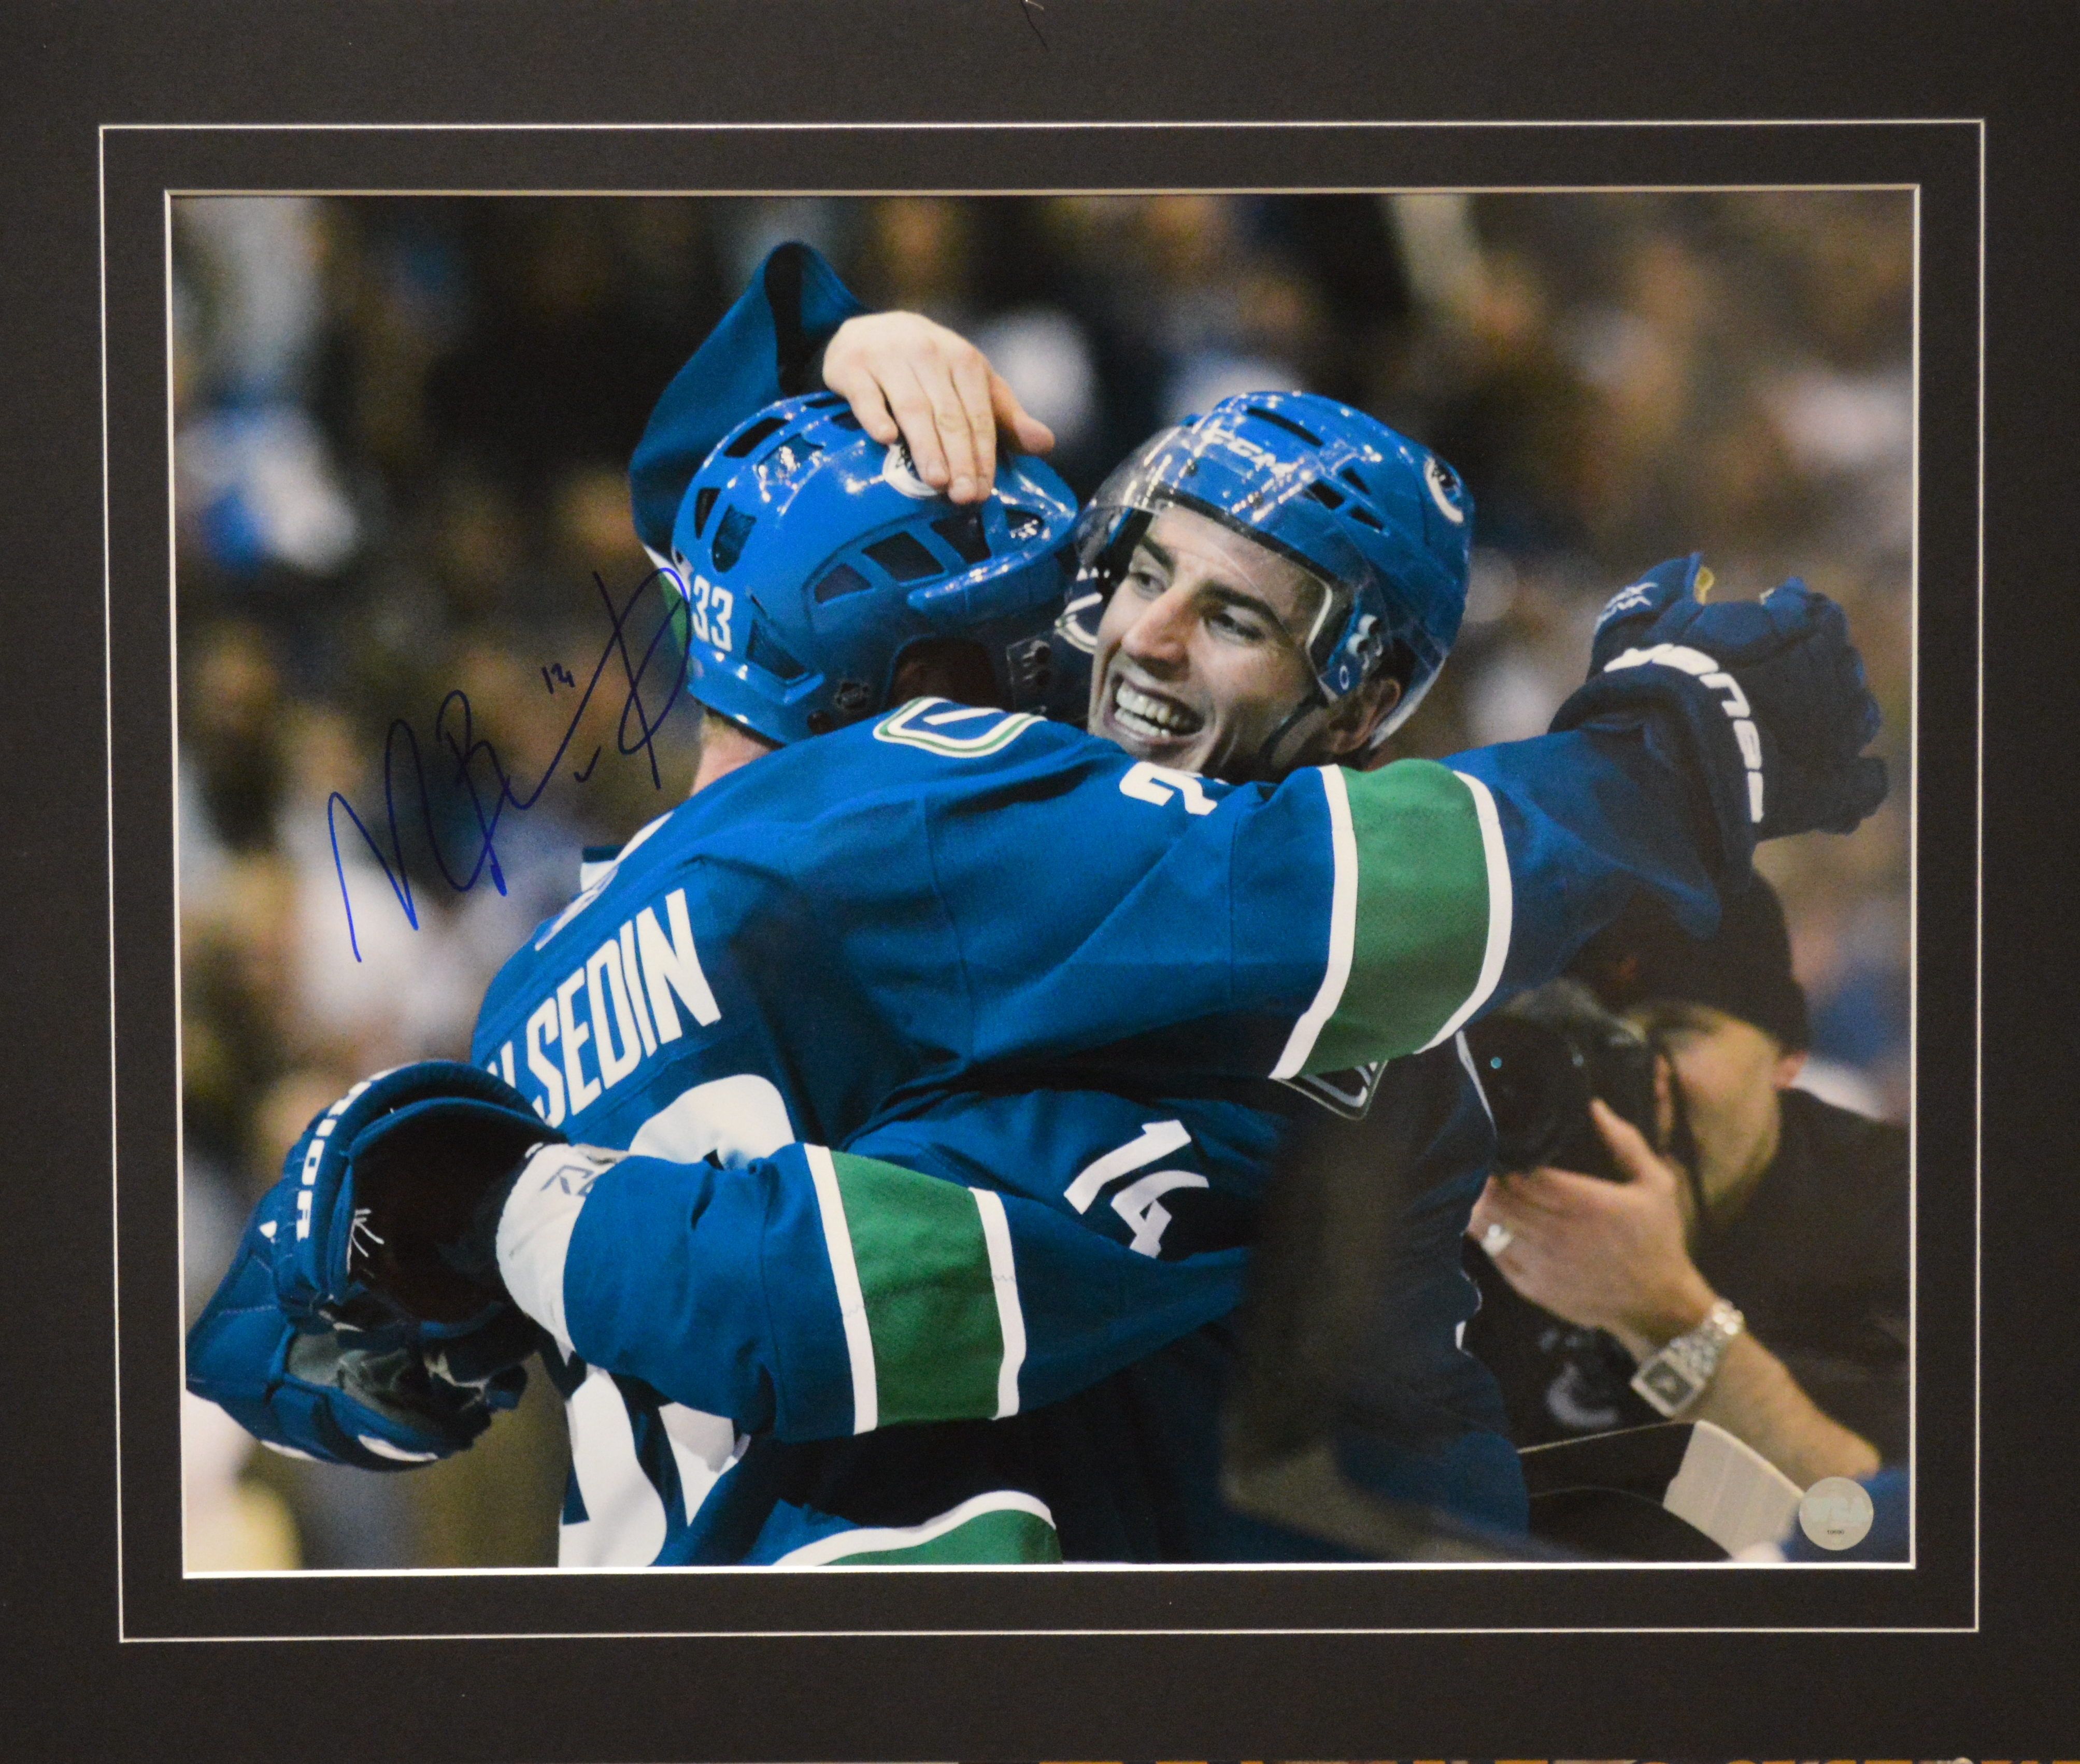 0cc959e122b ... Alex Burrows Autographed Vancouver Canucks 16 x 20 Photo.  West Coast Authentic NHL Canucks Alex Burrows Autographed Photo(1)